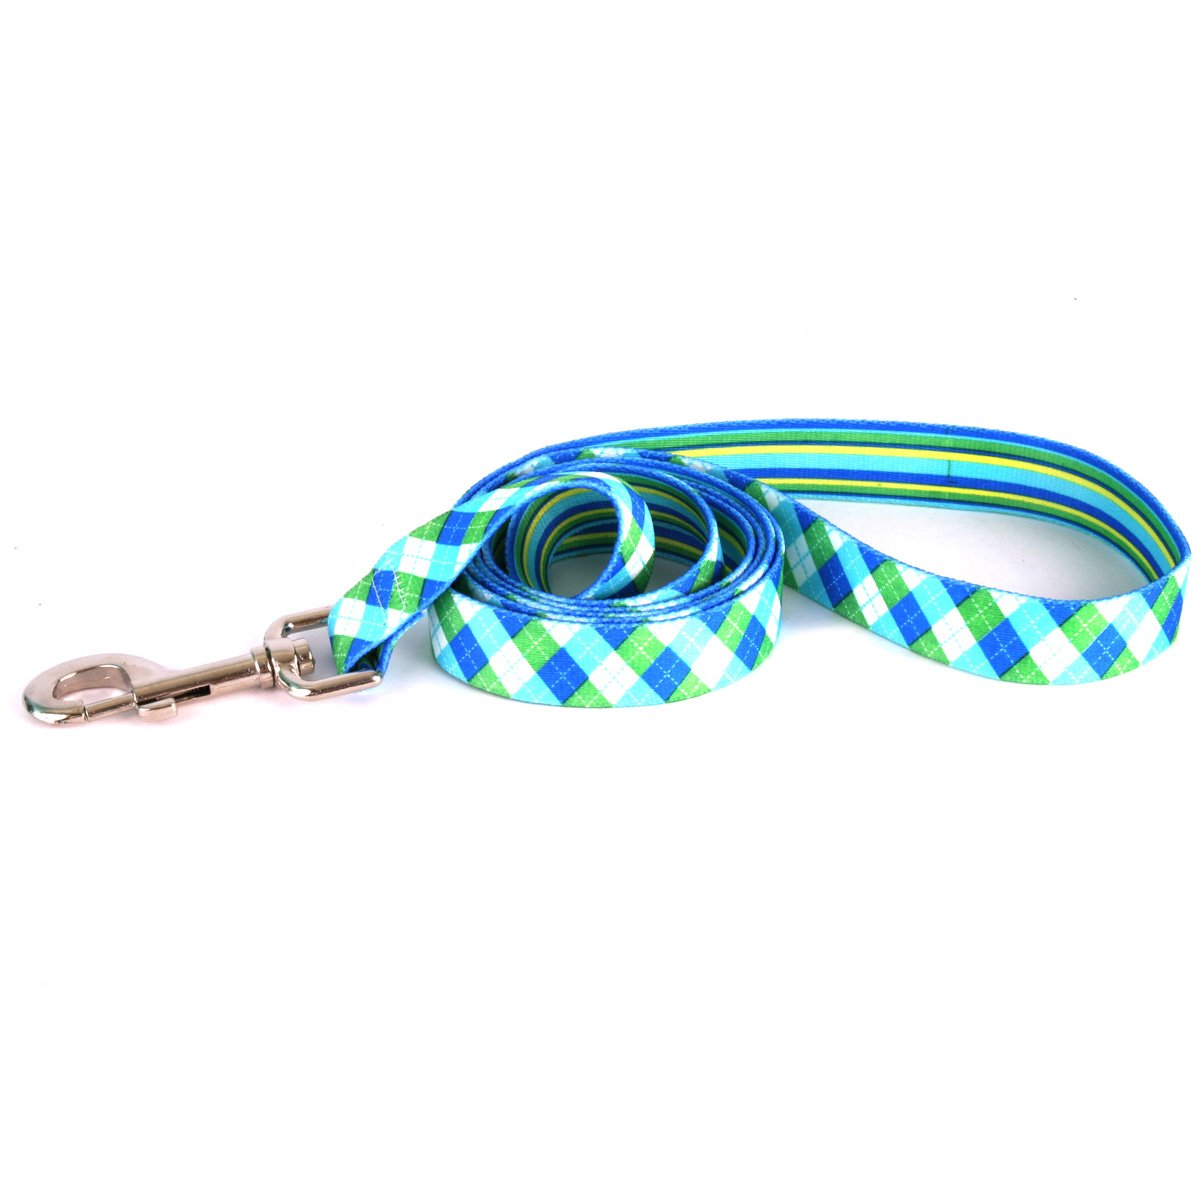 Yellow Dog Design Blue And Green Argyle Dog Leash 1'' Wide And 5' (60'') Long, Large